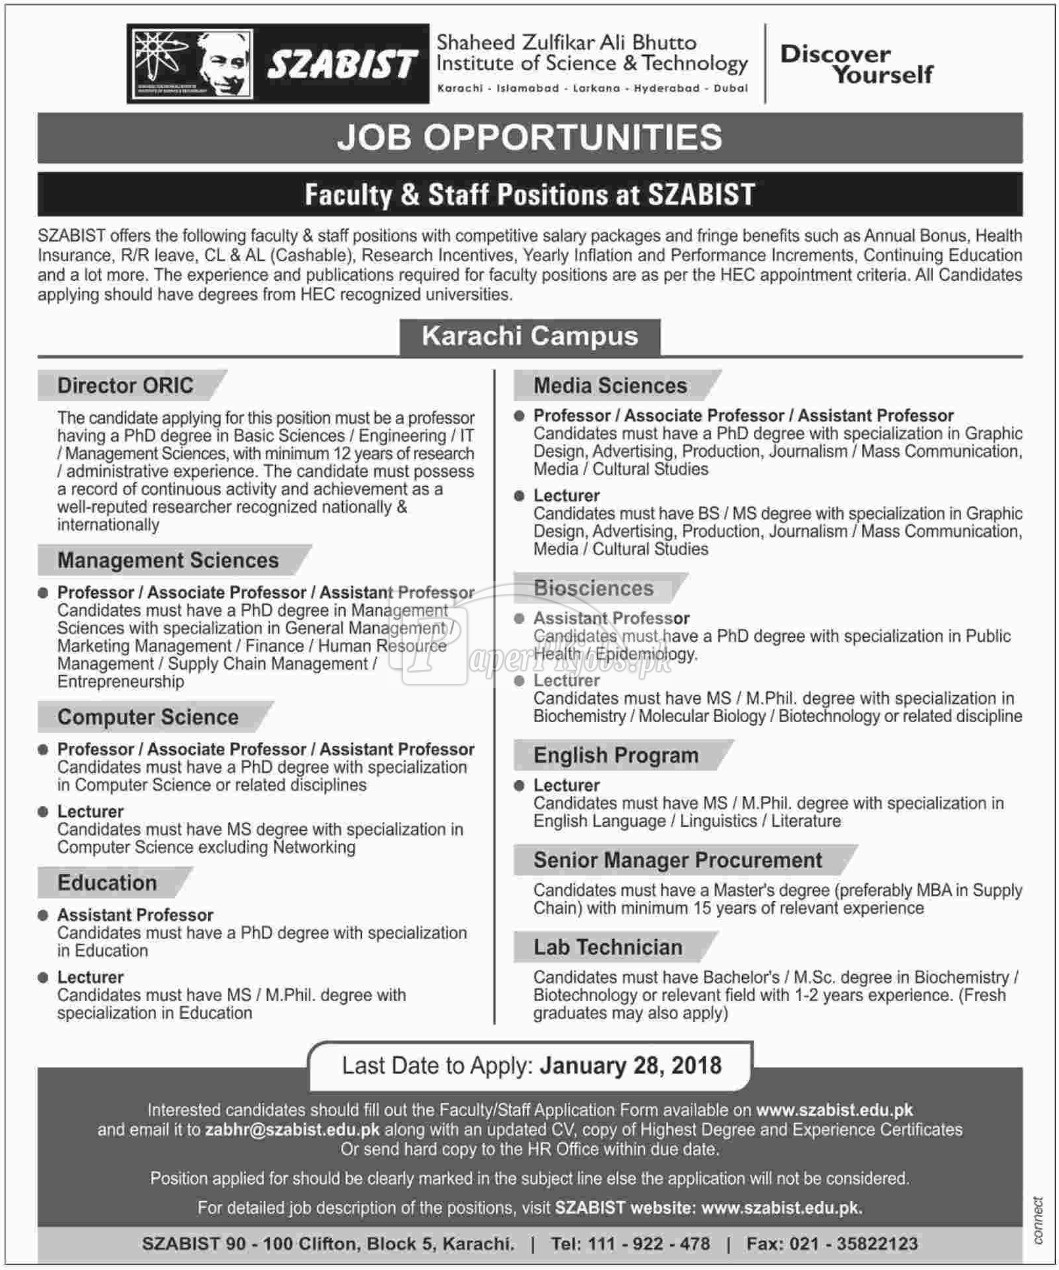 Shaheed Zulfikar Ali Bhutto Institute of Science & Technology SZABIST Jobs 2018